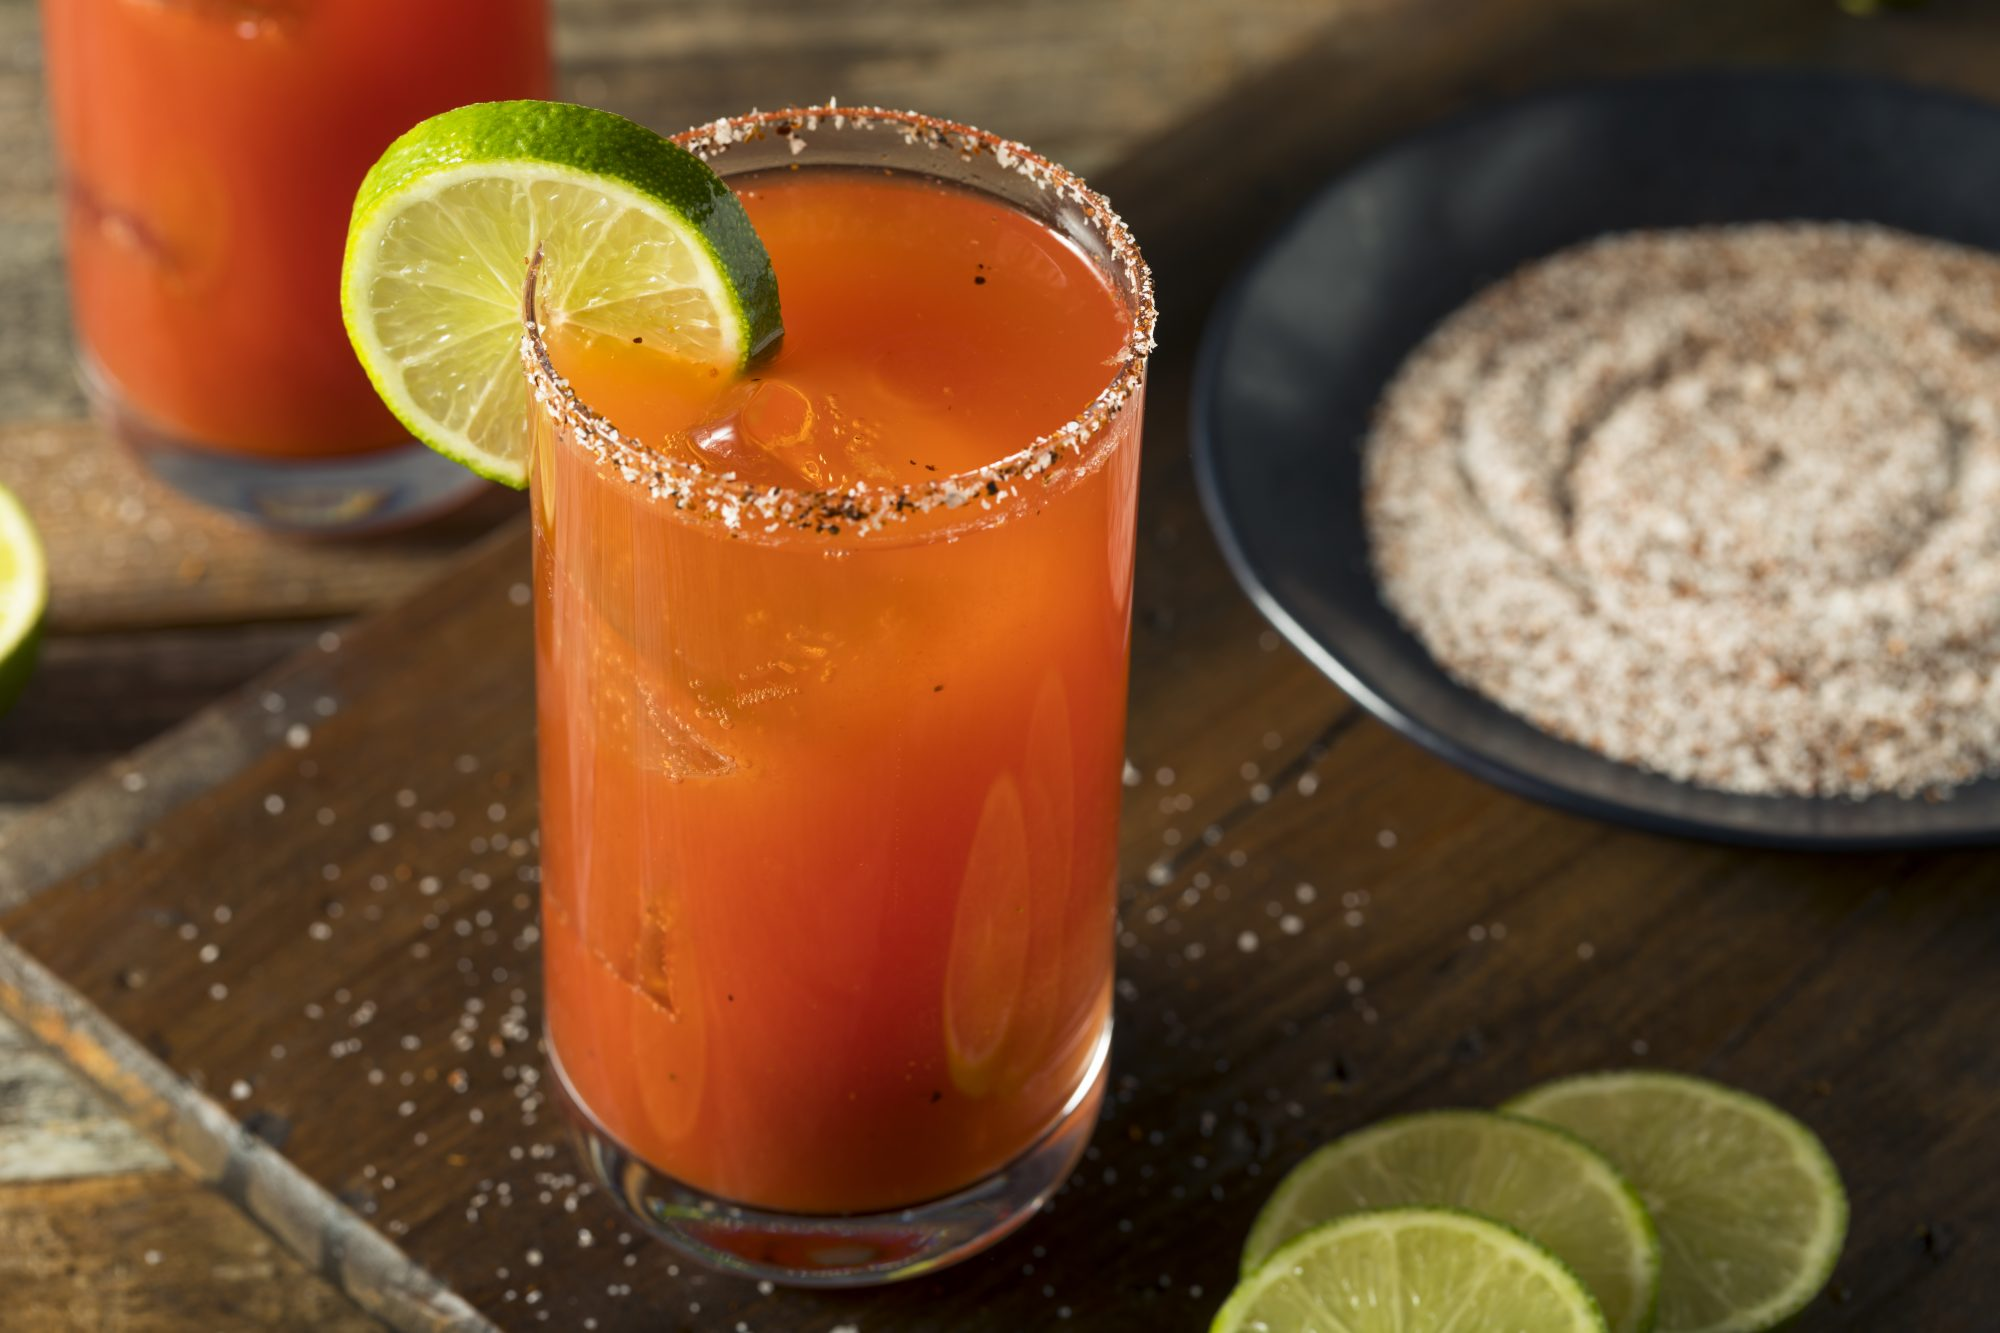 What Is a Michelada and How Do You Make One?